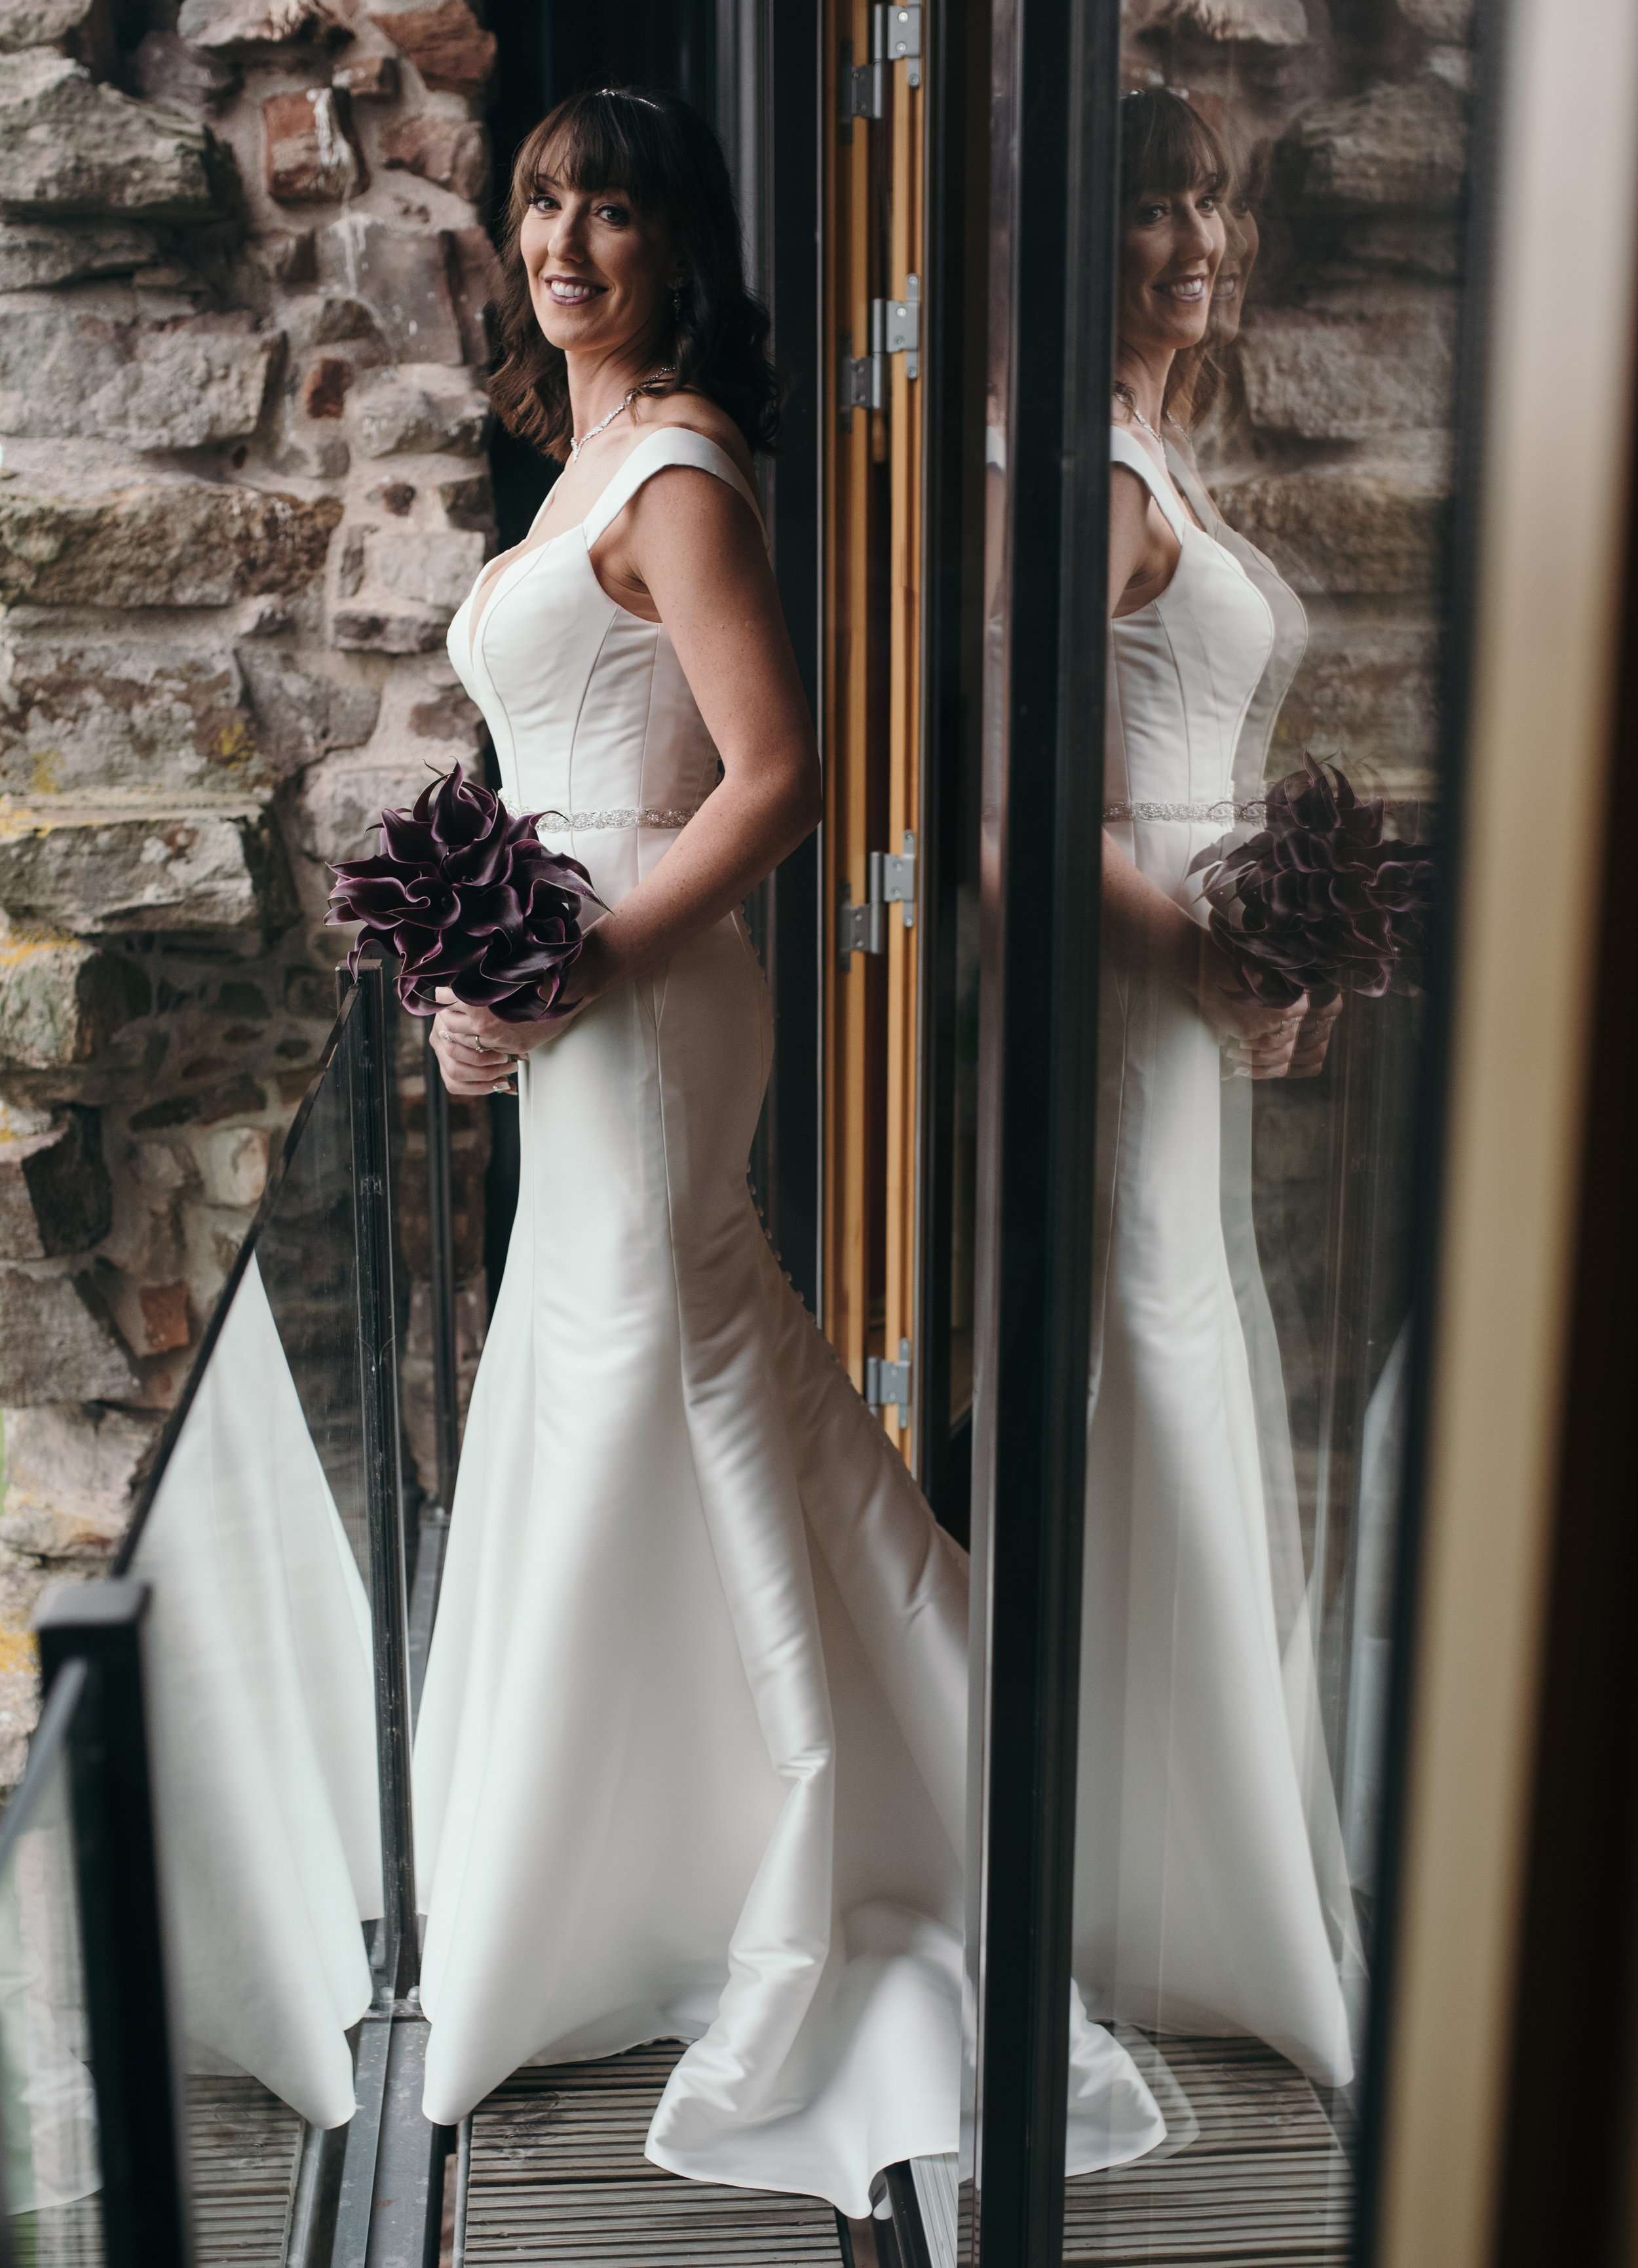 The bride standing on the balcony looking back into the bedroom